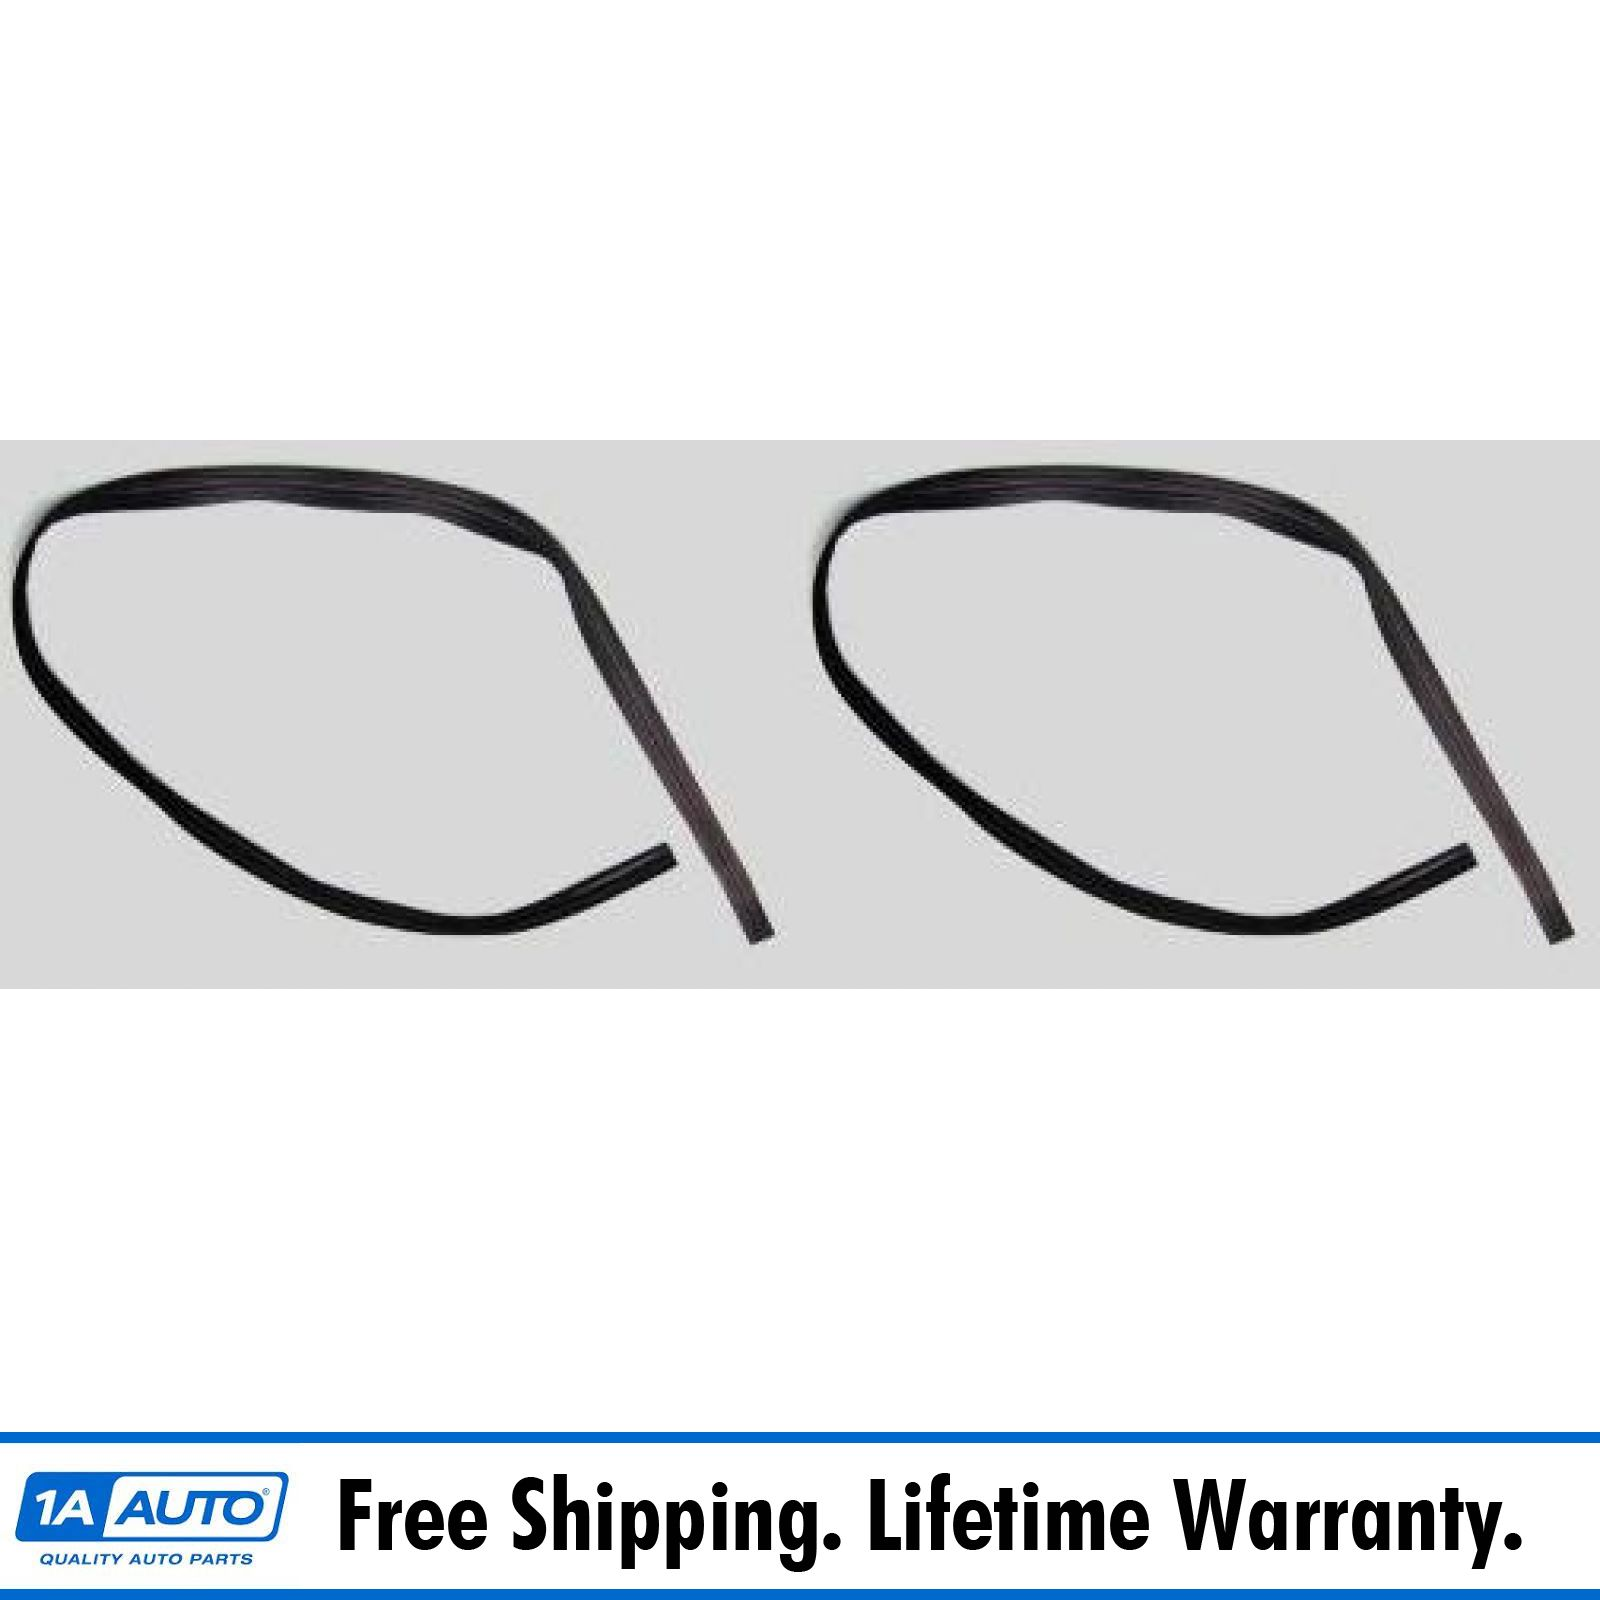 Front Window Glass Run Channel Rubber Weatherstrip Seal for El Camino Sprint